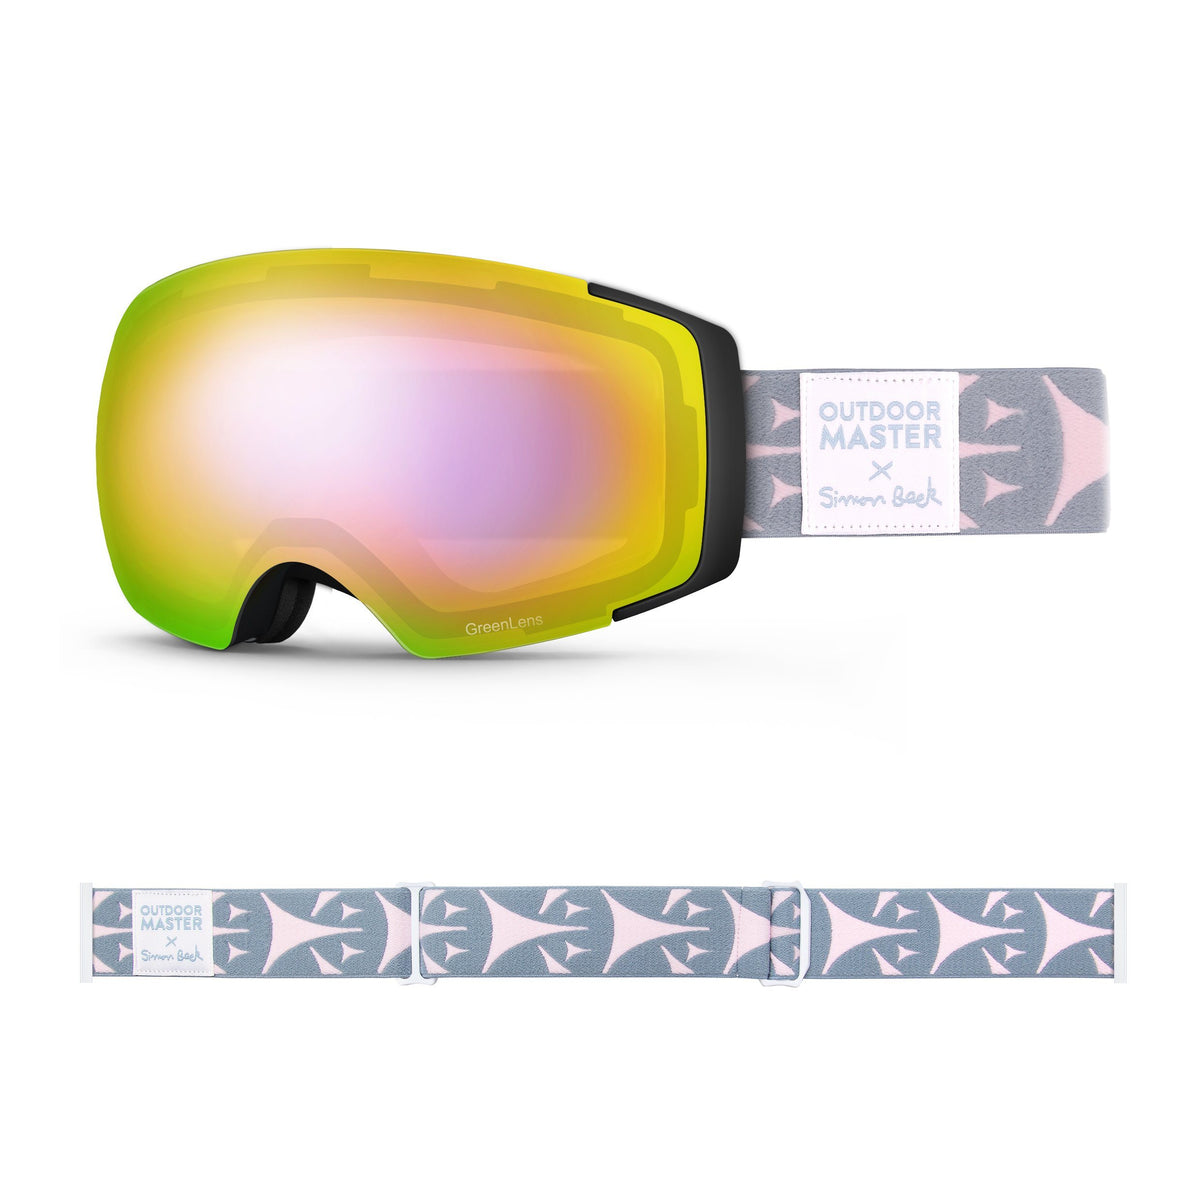 OutdoorMaster x Simon Beck Ski Goggles Pro Series - Snowshoeing Art Limited Edition OutdoorMaster GreenLens VLT 45% TAC Purple with REVO Red Polarized Bouncy Triangles